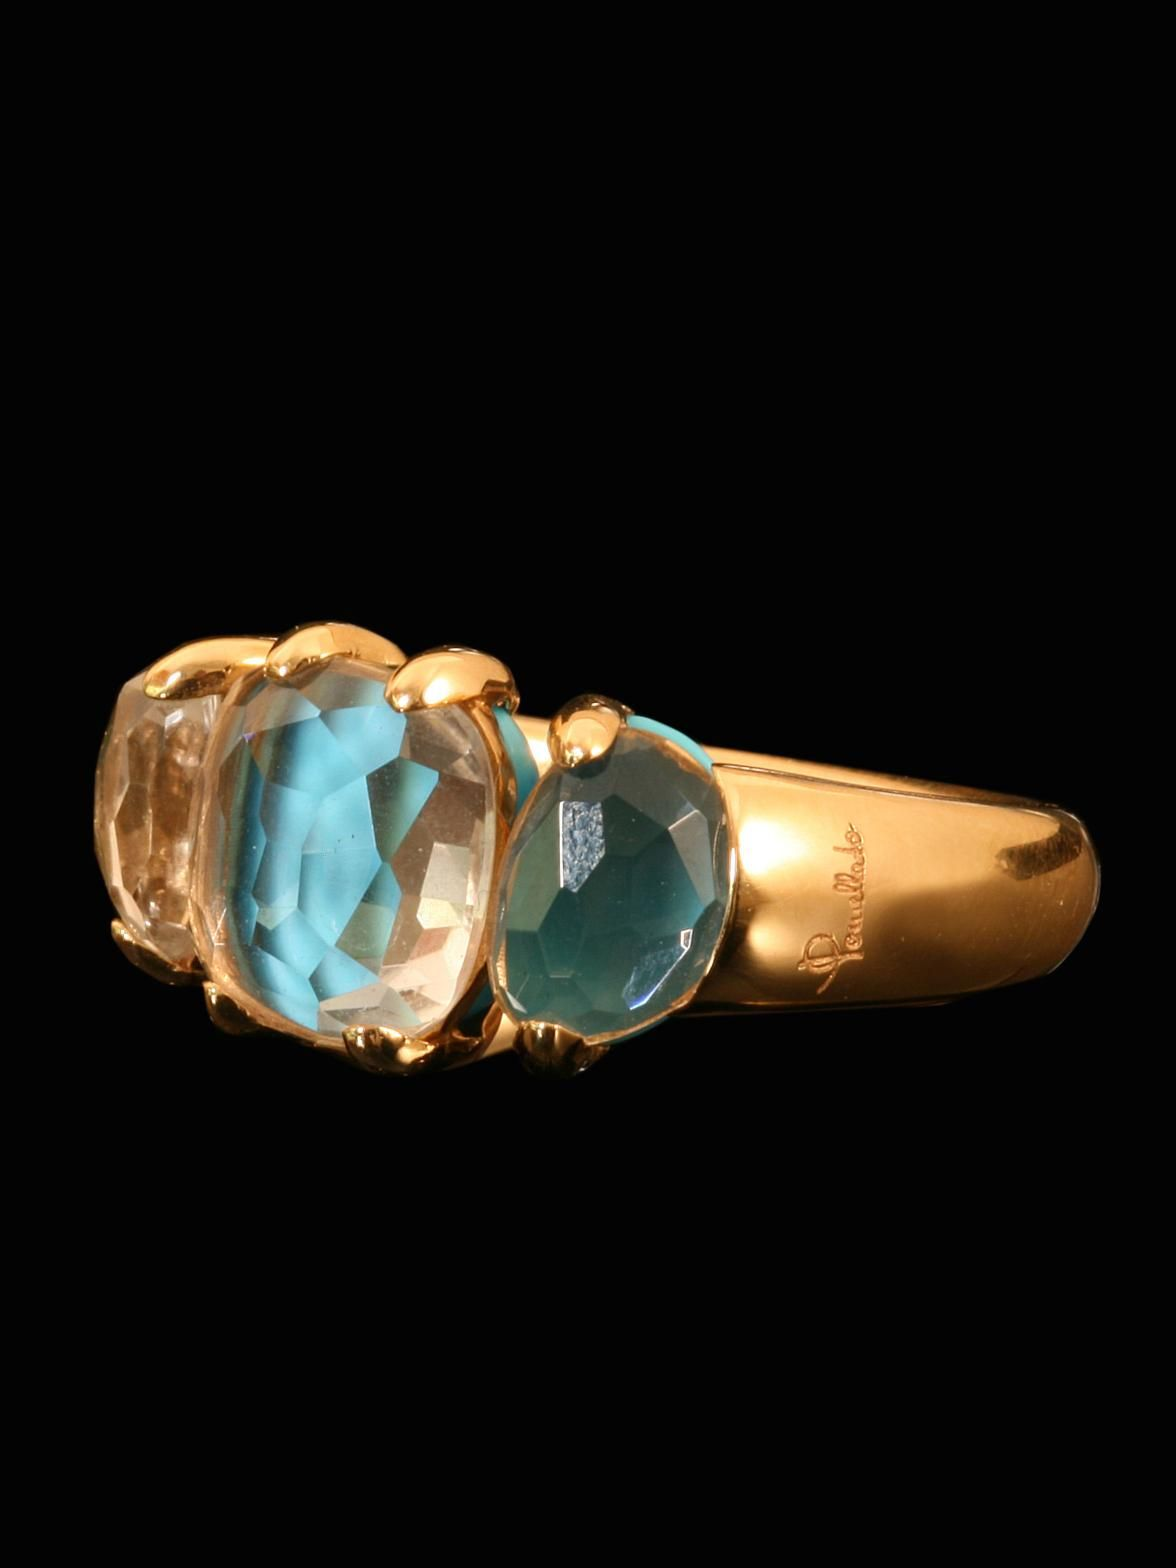 Pomellato 18KT Pink Gold Capri Turquoise and Rock Crystal Ring. Available at London Jewelers.